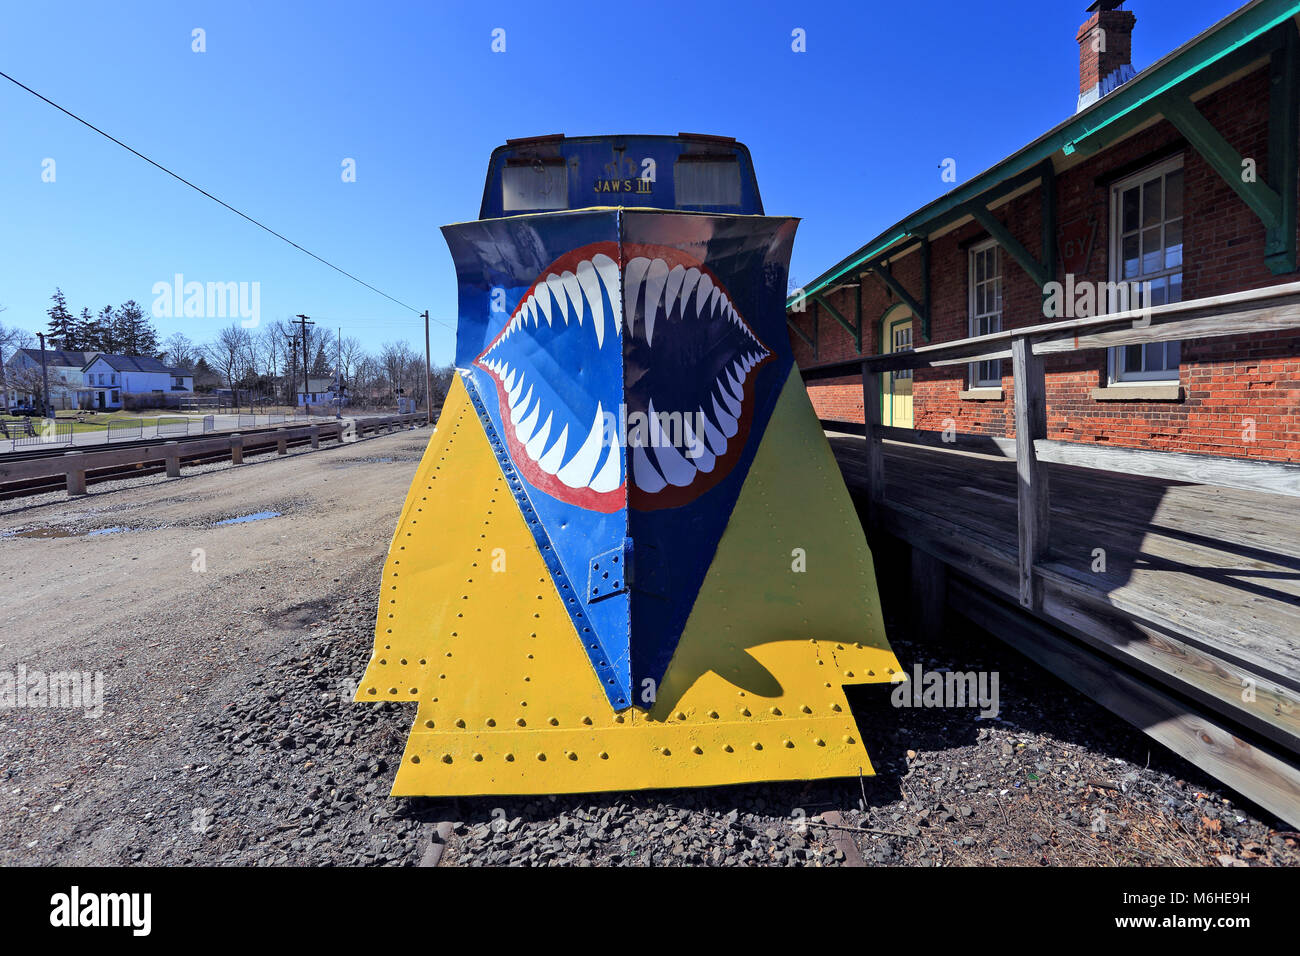 Railroad car used for snow removal Long Island New York - Stock Image